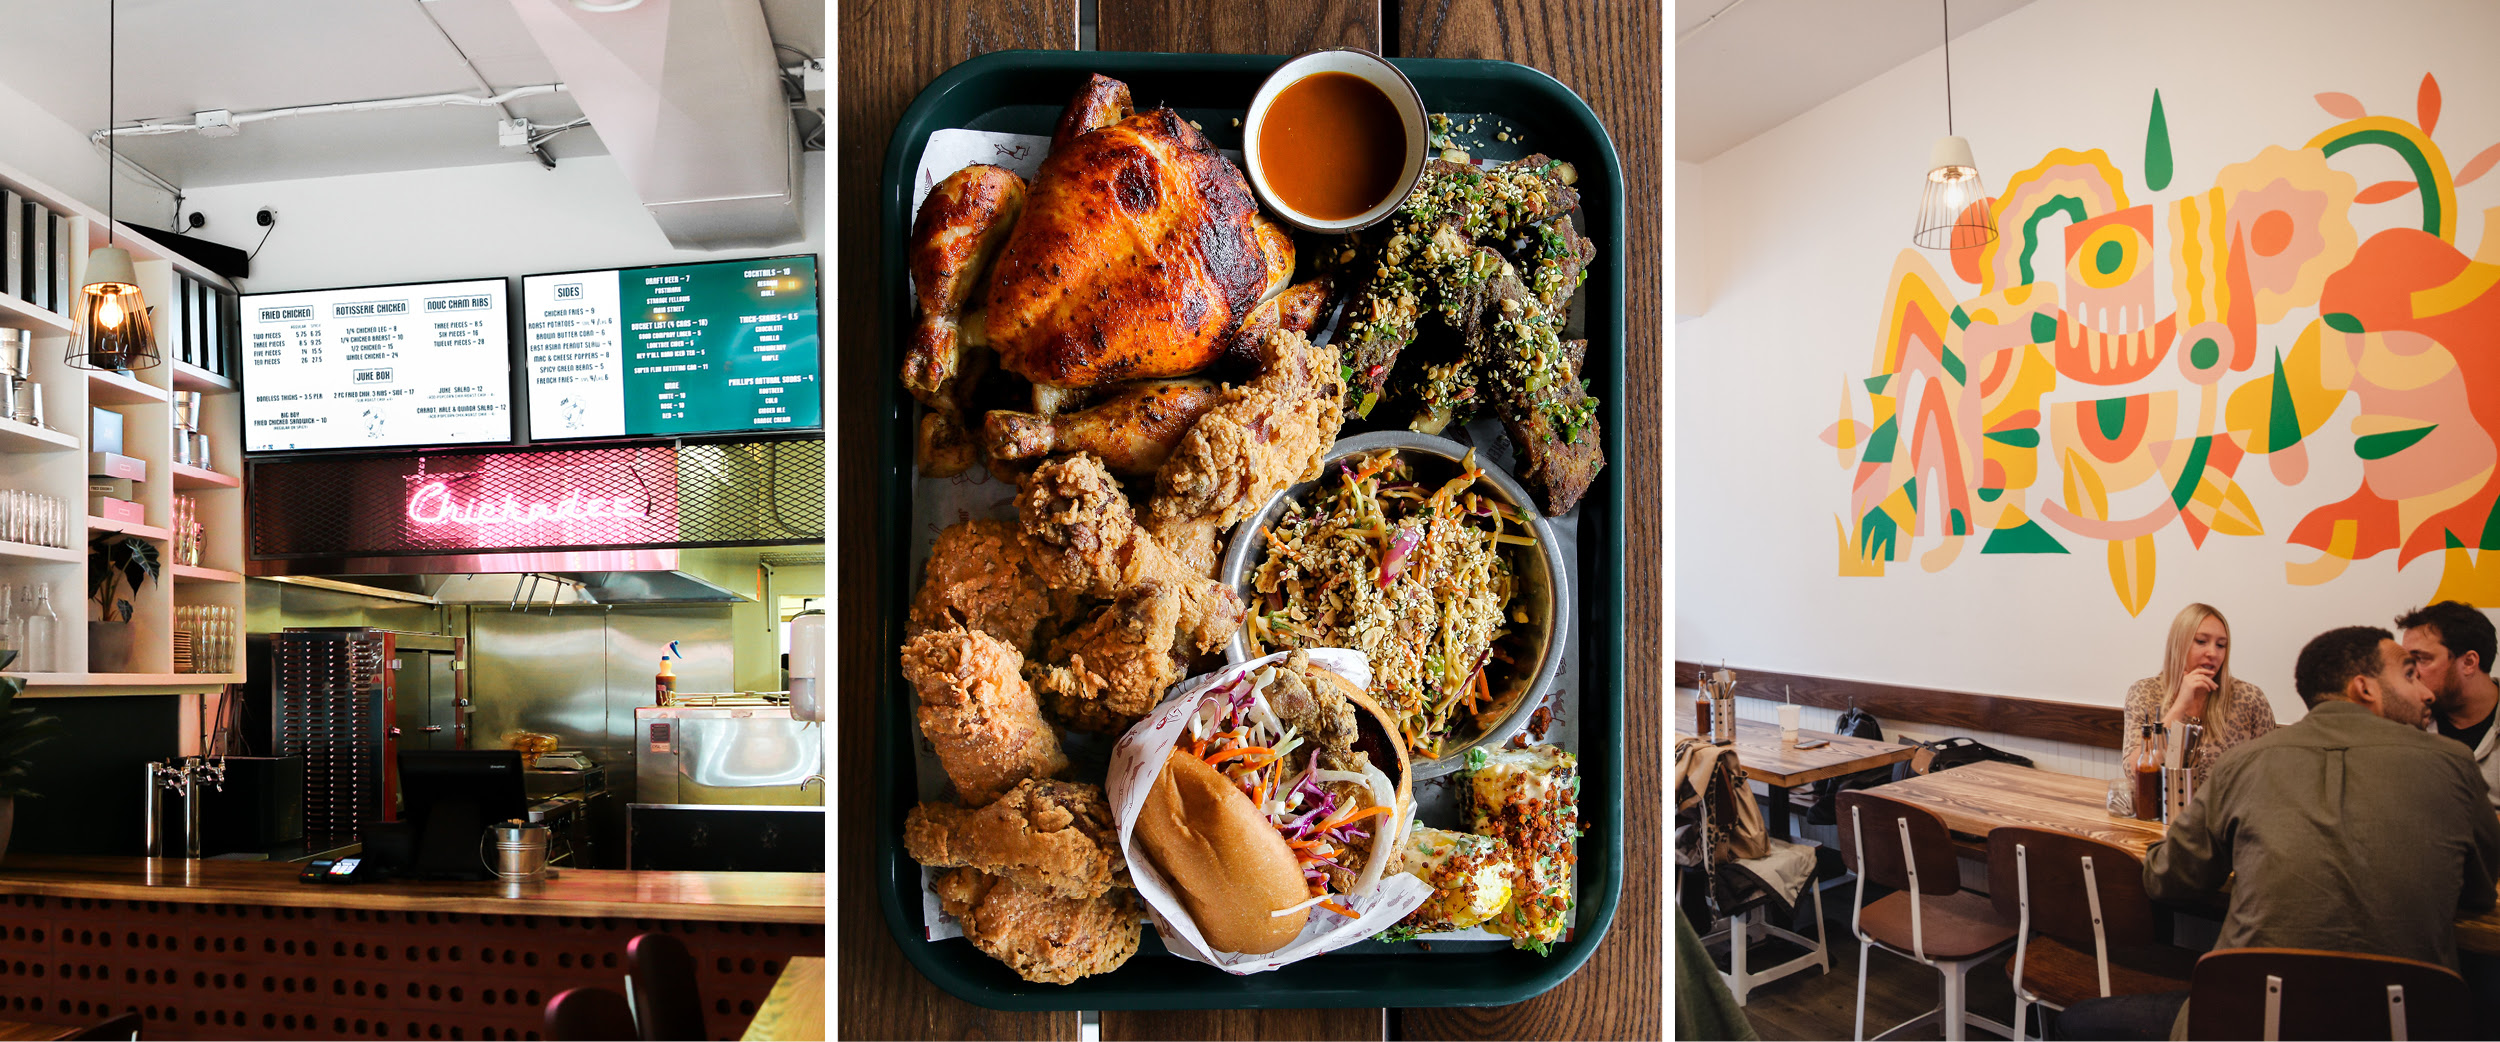 Little Juke to Close Its Doors on September 22 to Make Way for Exciting New Restaurant Concept Launching this October